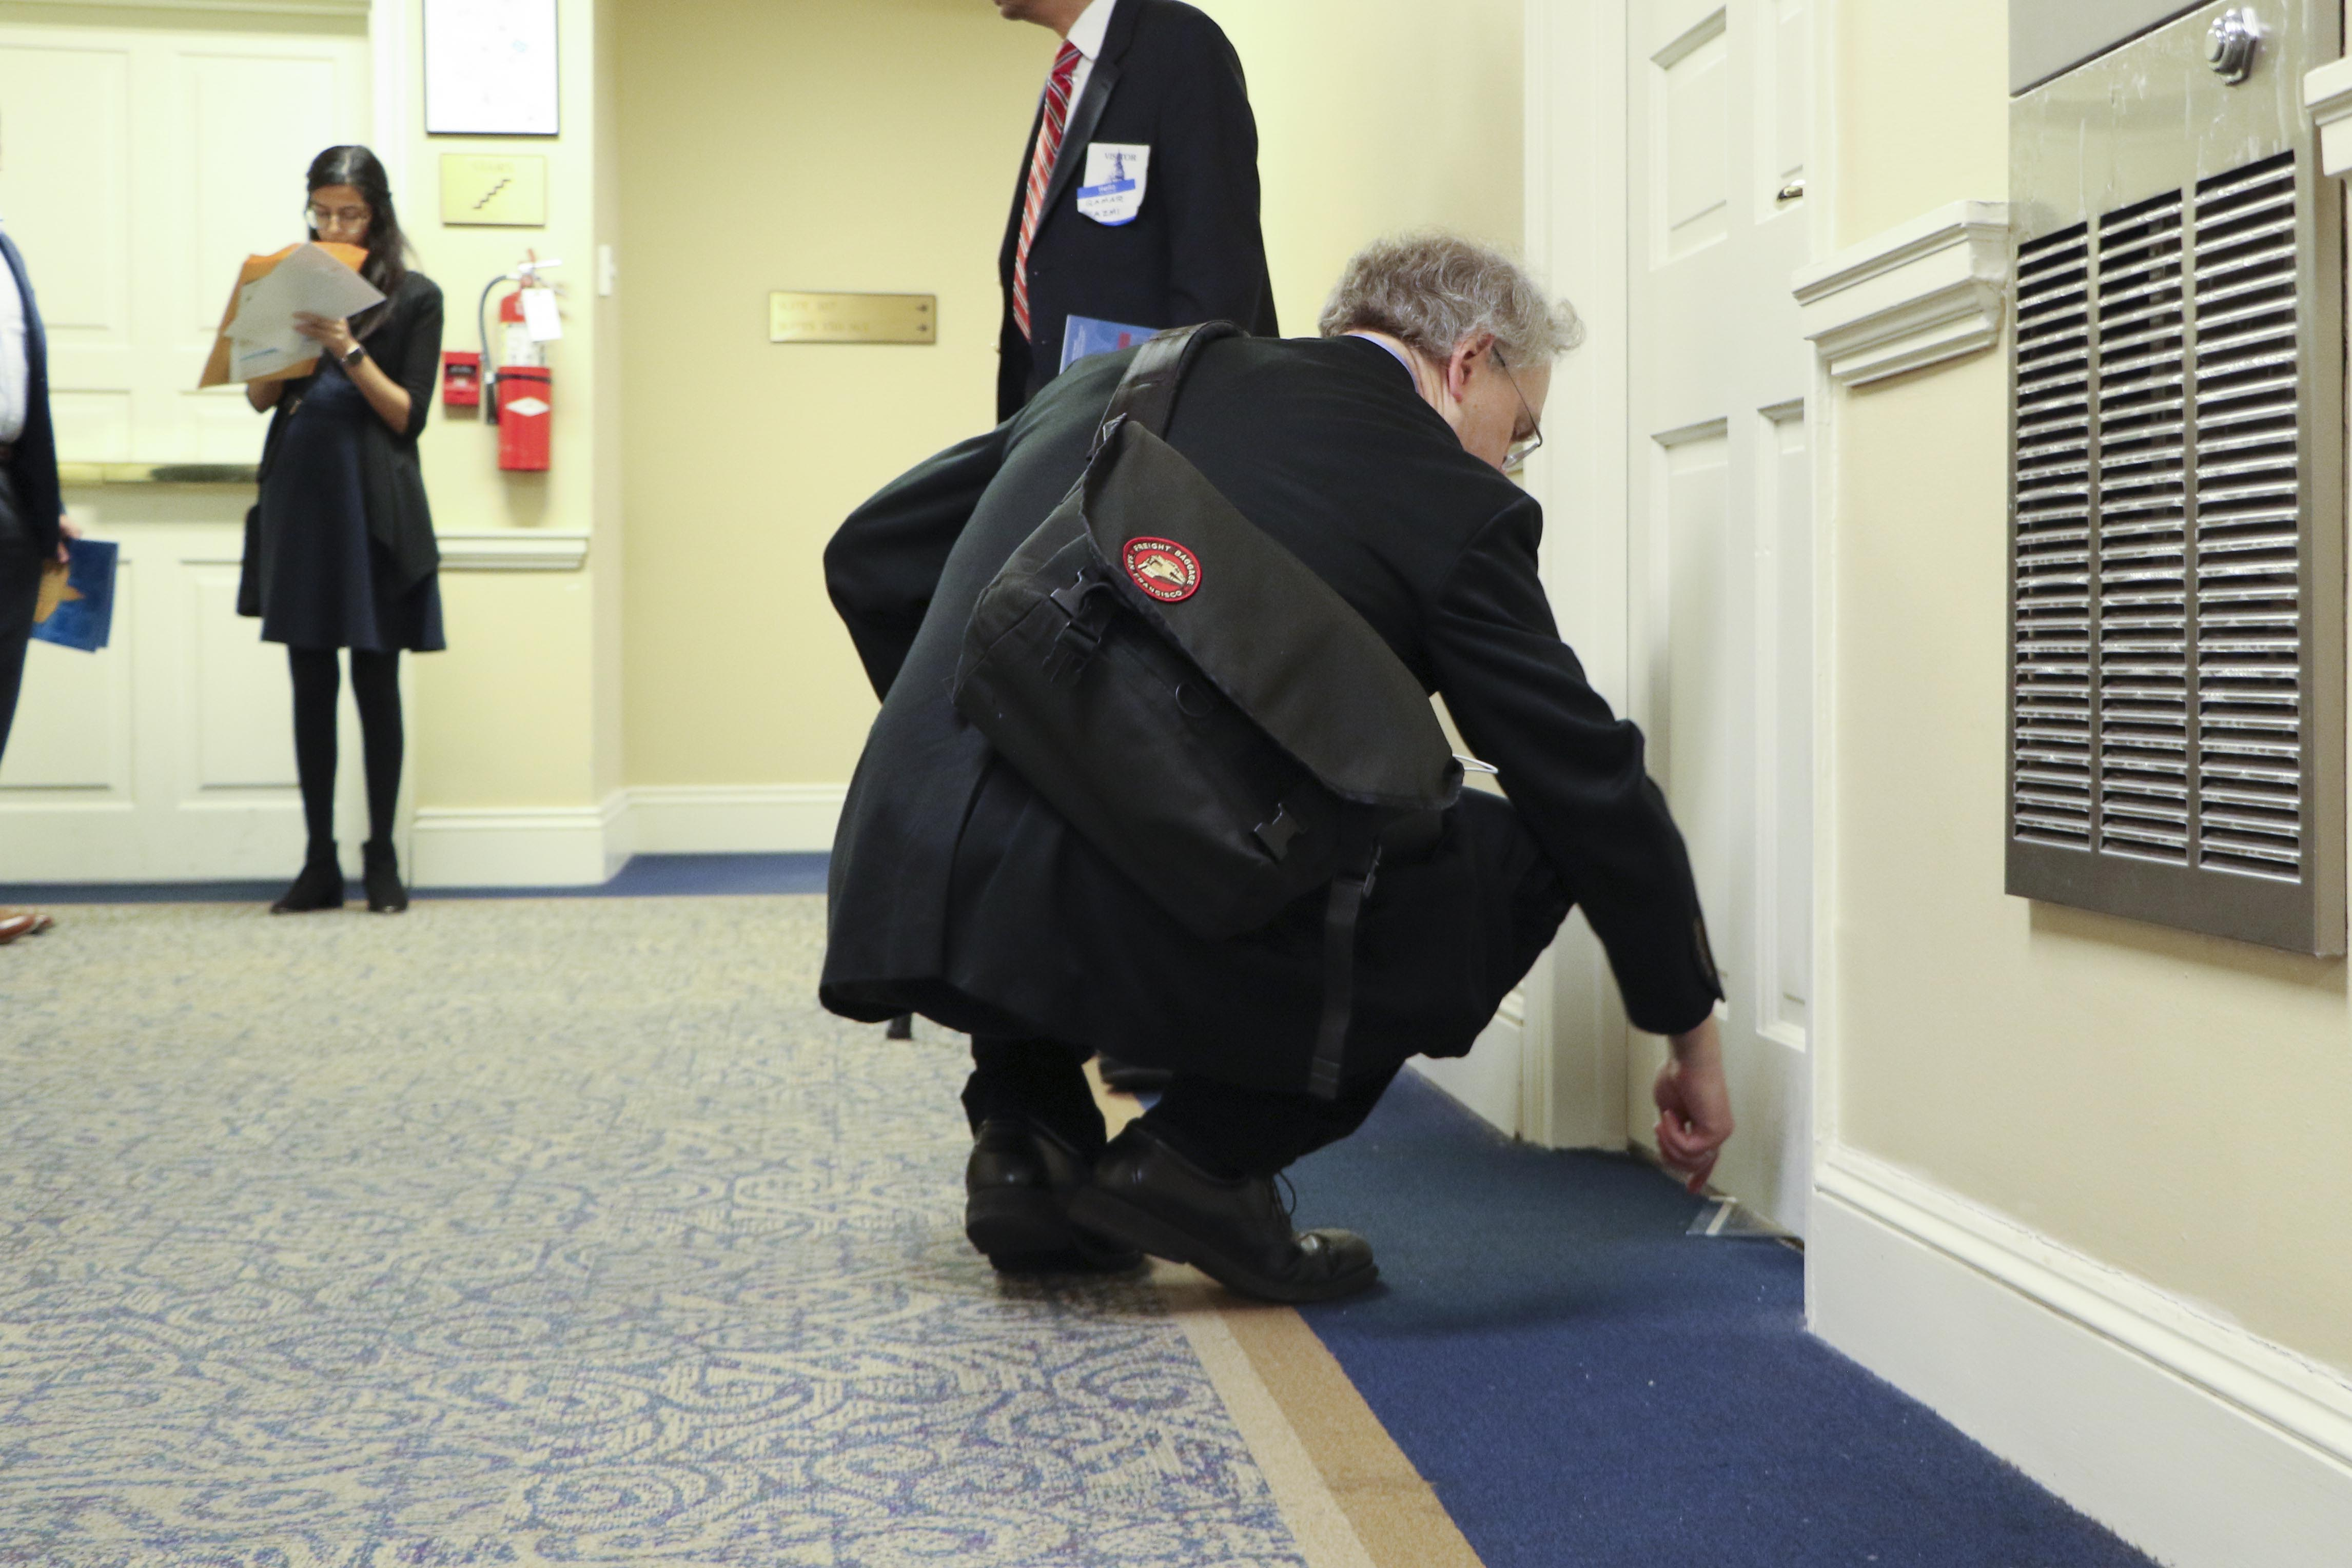 A man slips literature under the door of a delegate who is not in their office.